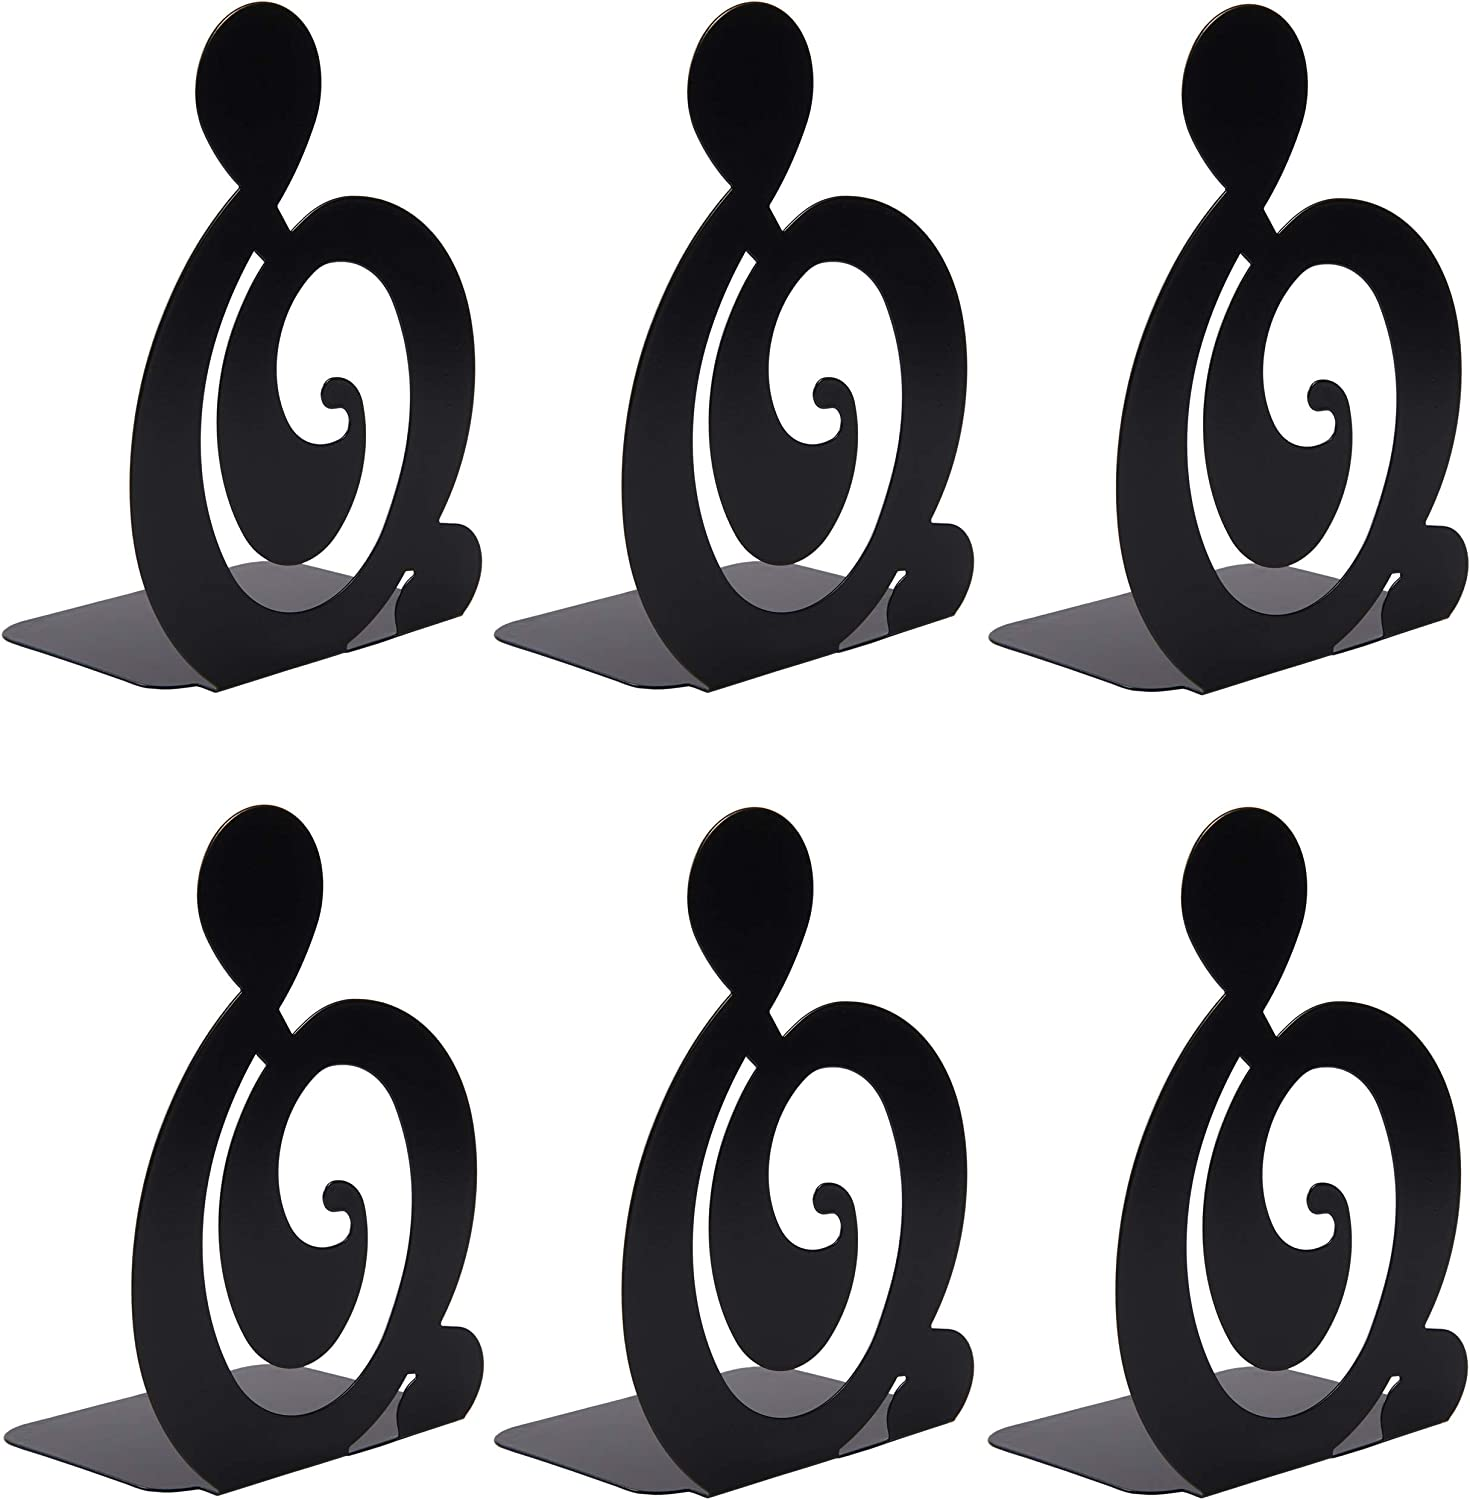 WUWEOT 3 Pair/6 Piece Book Ends, Metal Iron Decorative Heavy Duty Bookends, Black Book Support Book Stopper for School, Home or Office, 7.6 x 4.9 x 4 Inches